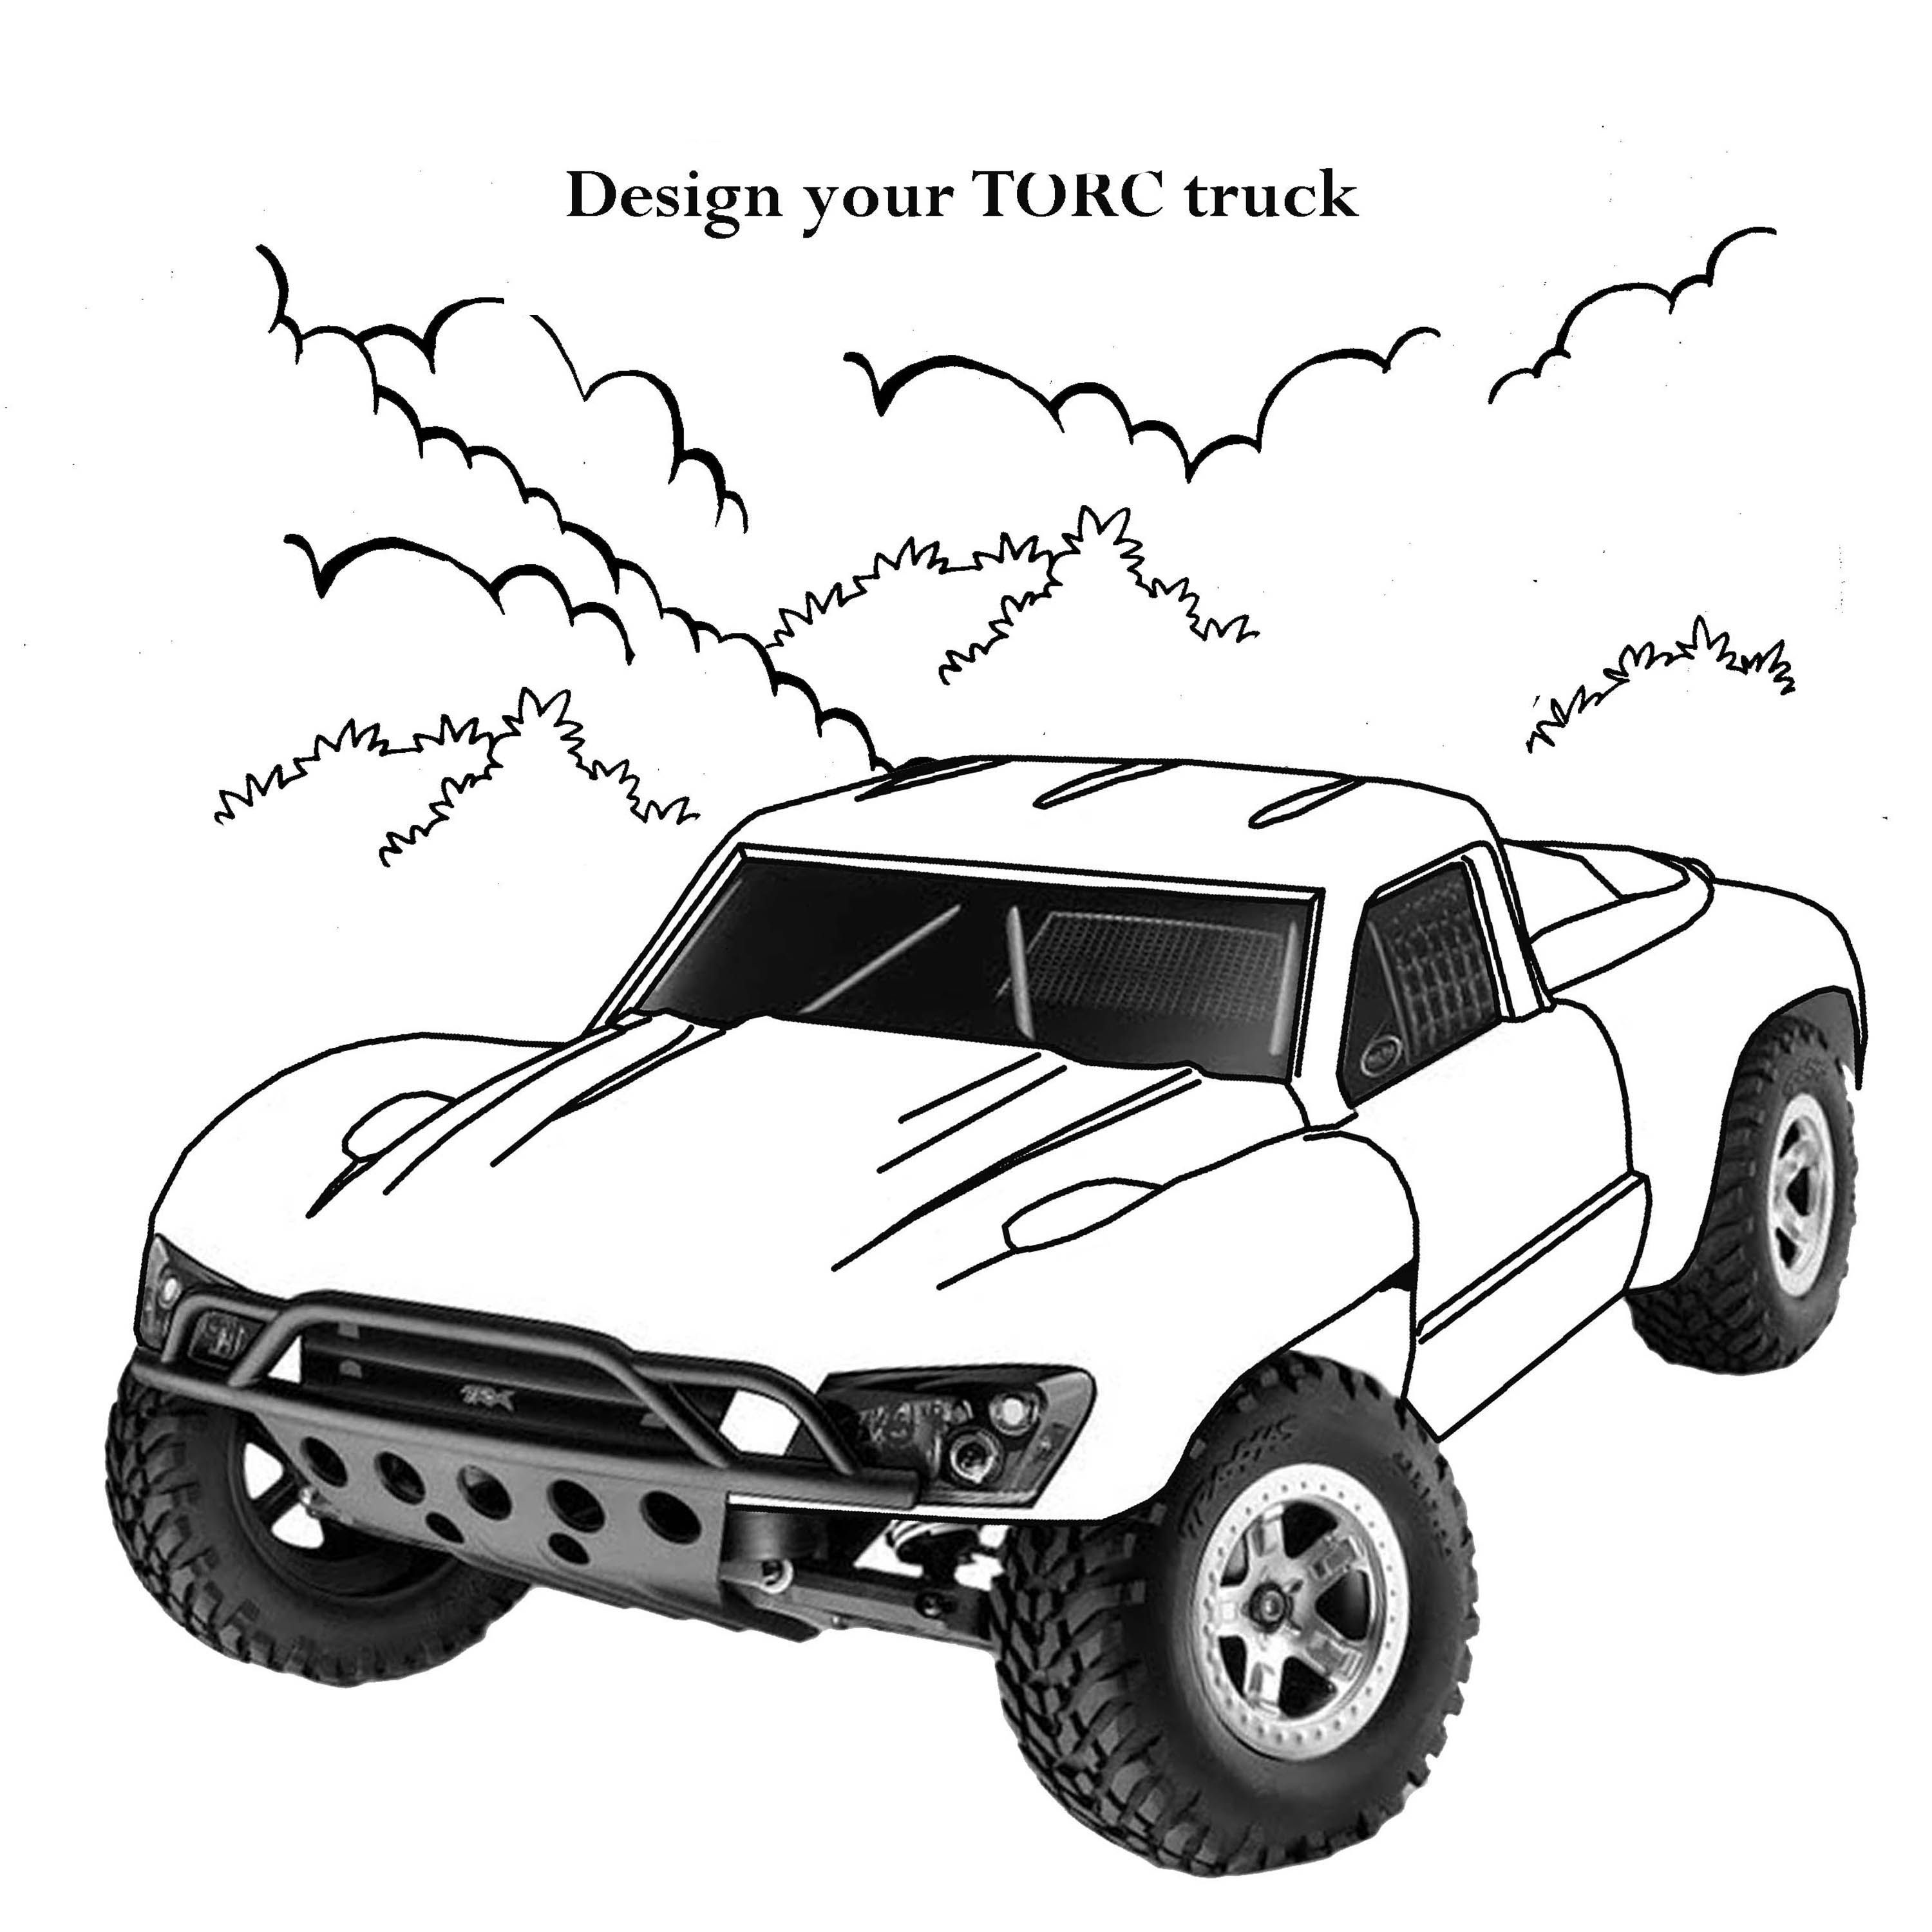 Coloring Pages Of Cars And Trucks Beau Coloring Pages Cars And Trucks Coloring Pages Designs Of 30 Colo Truck Coloring Pages Cars Coloring Pages Coloring Pages